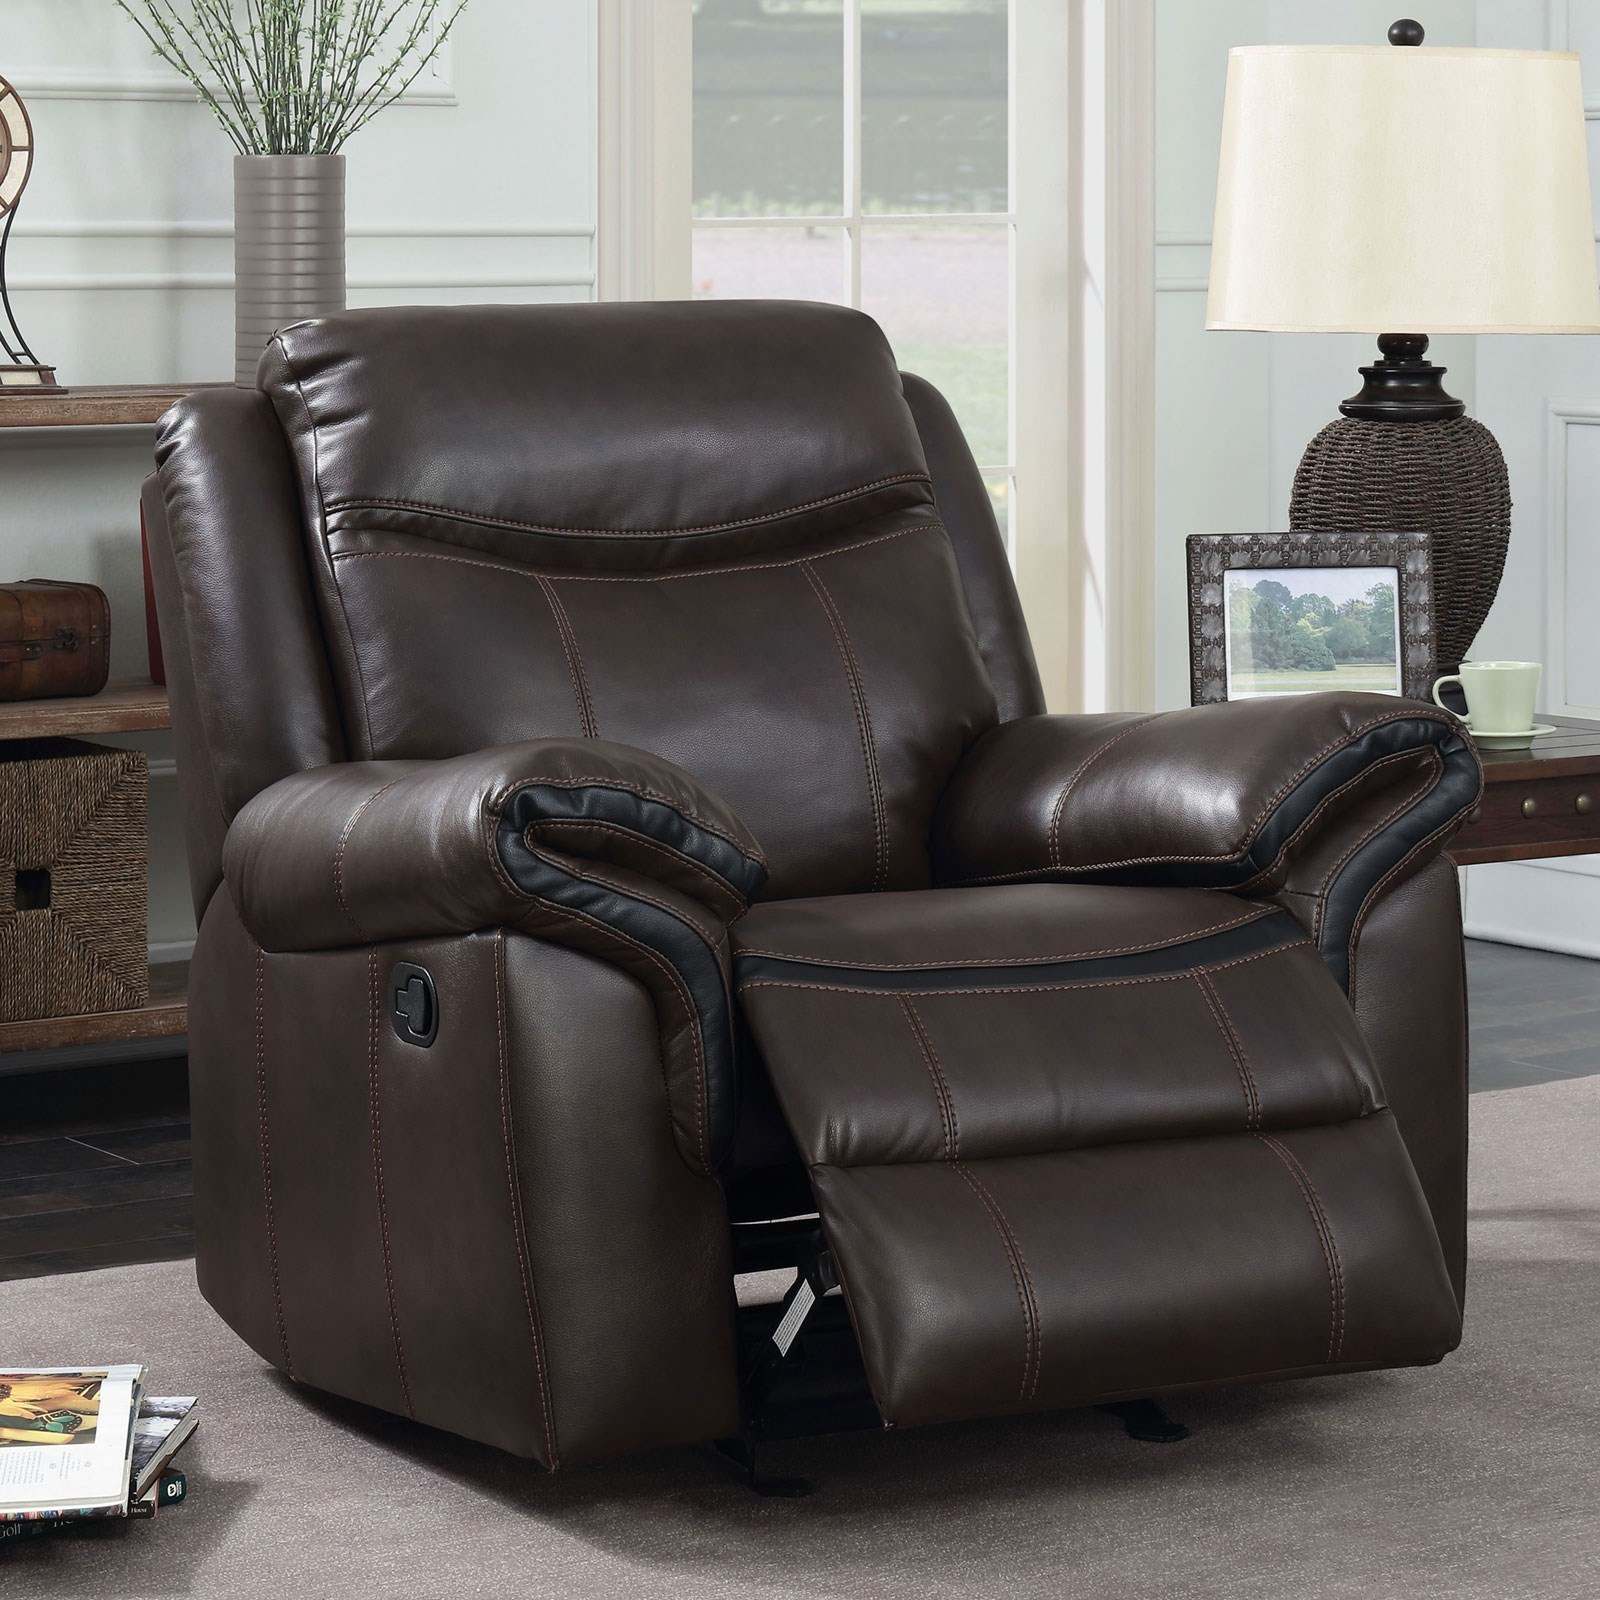 Recliner Pillow Chenai Glider Recliner With Pillow Arms And Padded Headrest By Furniture Of America At Rooms For Less